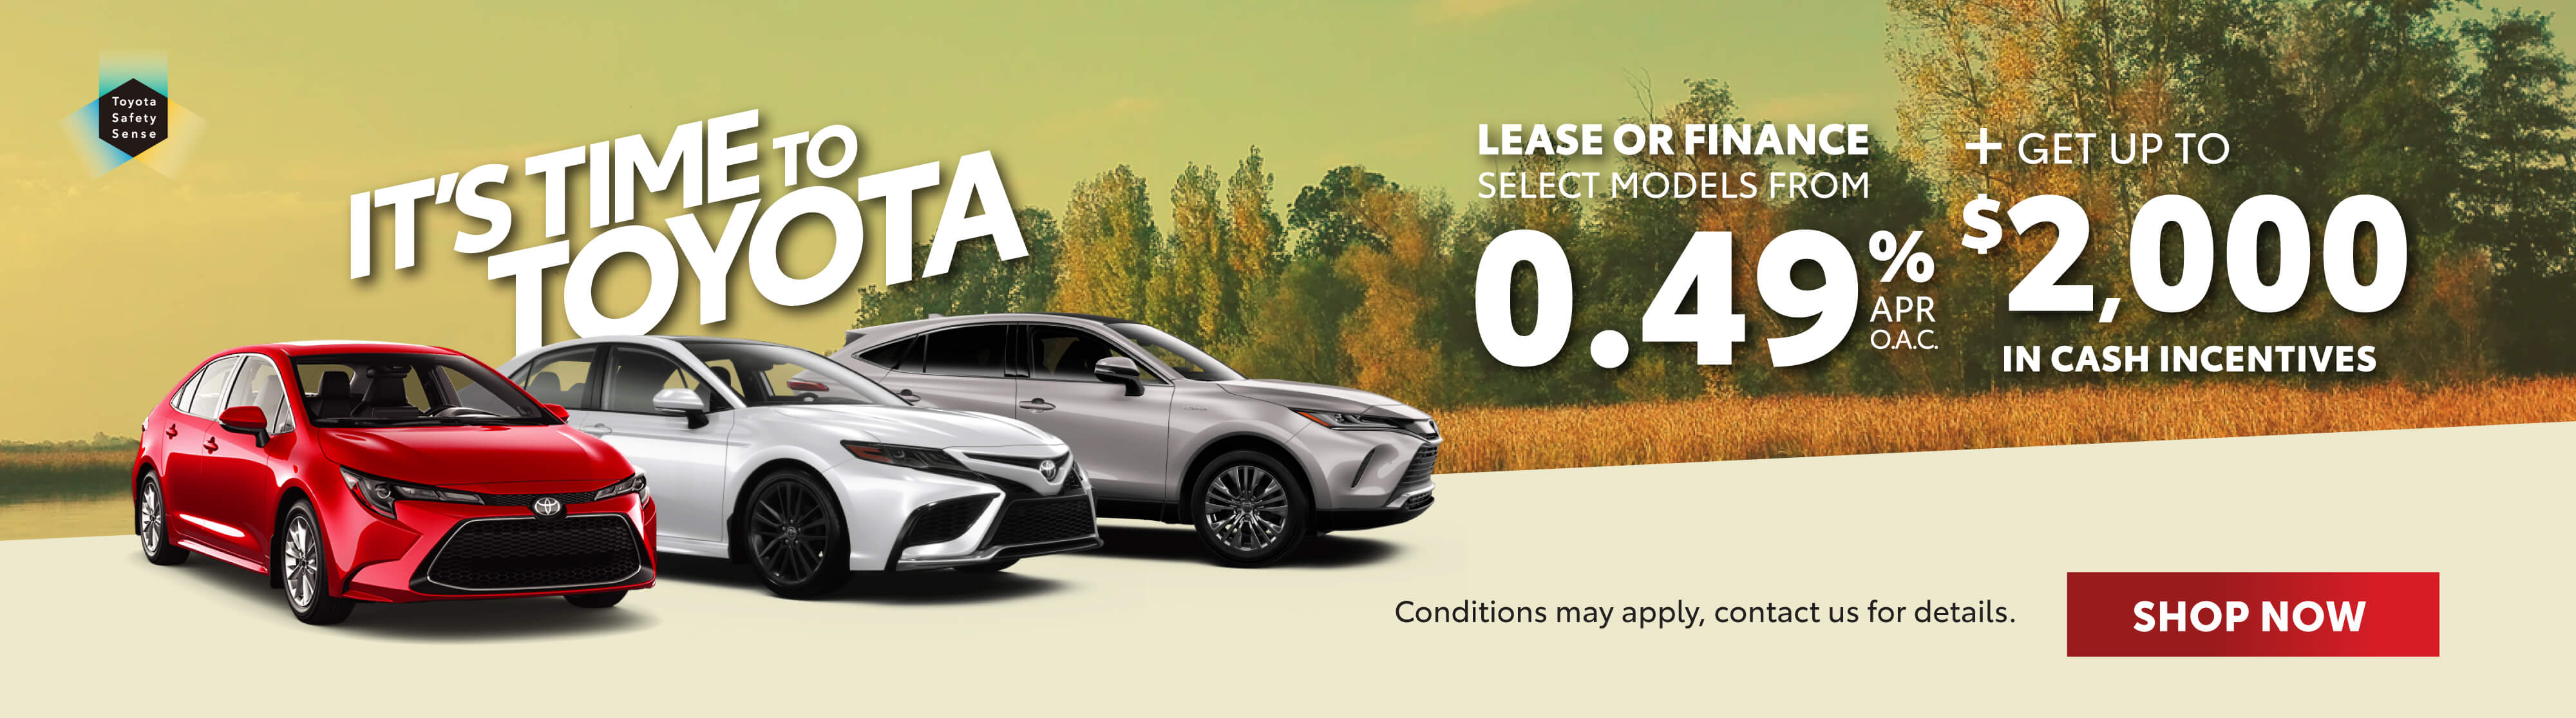 Toyota Promotions Georgetown - Its Time To Toyota Georgetown Toyota